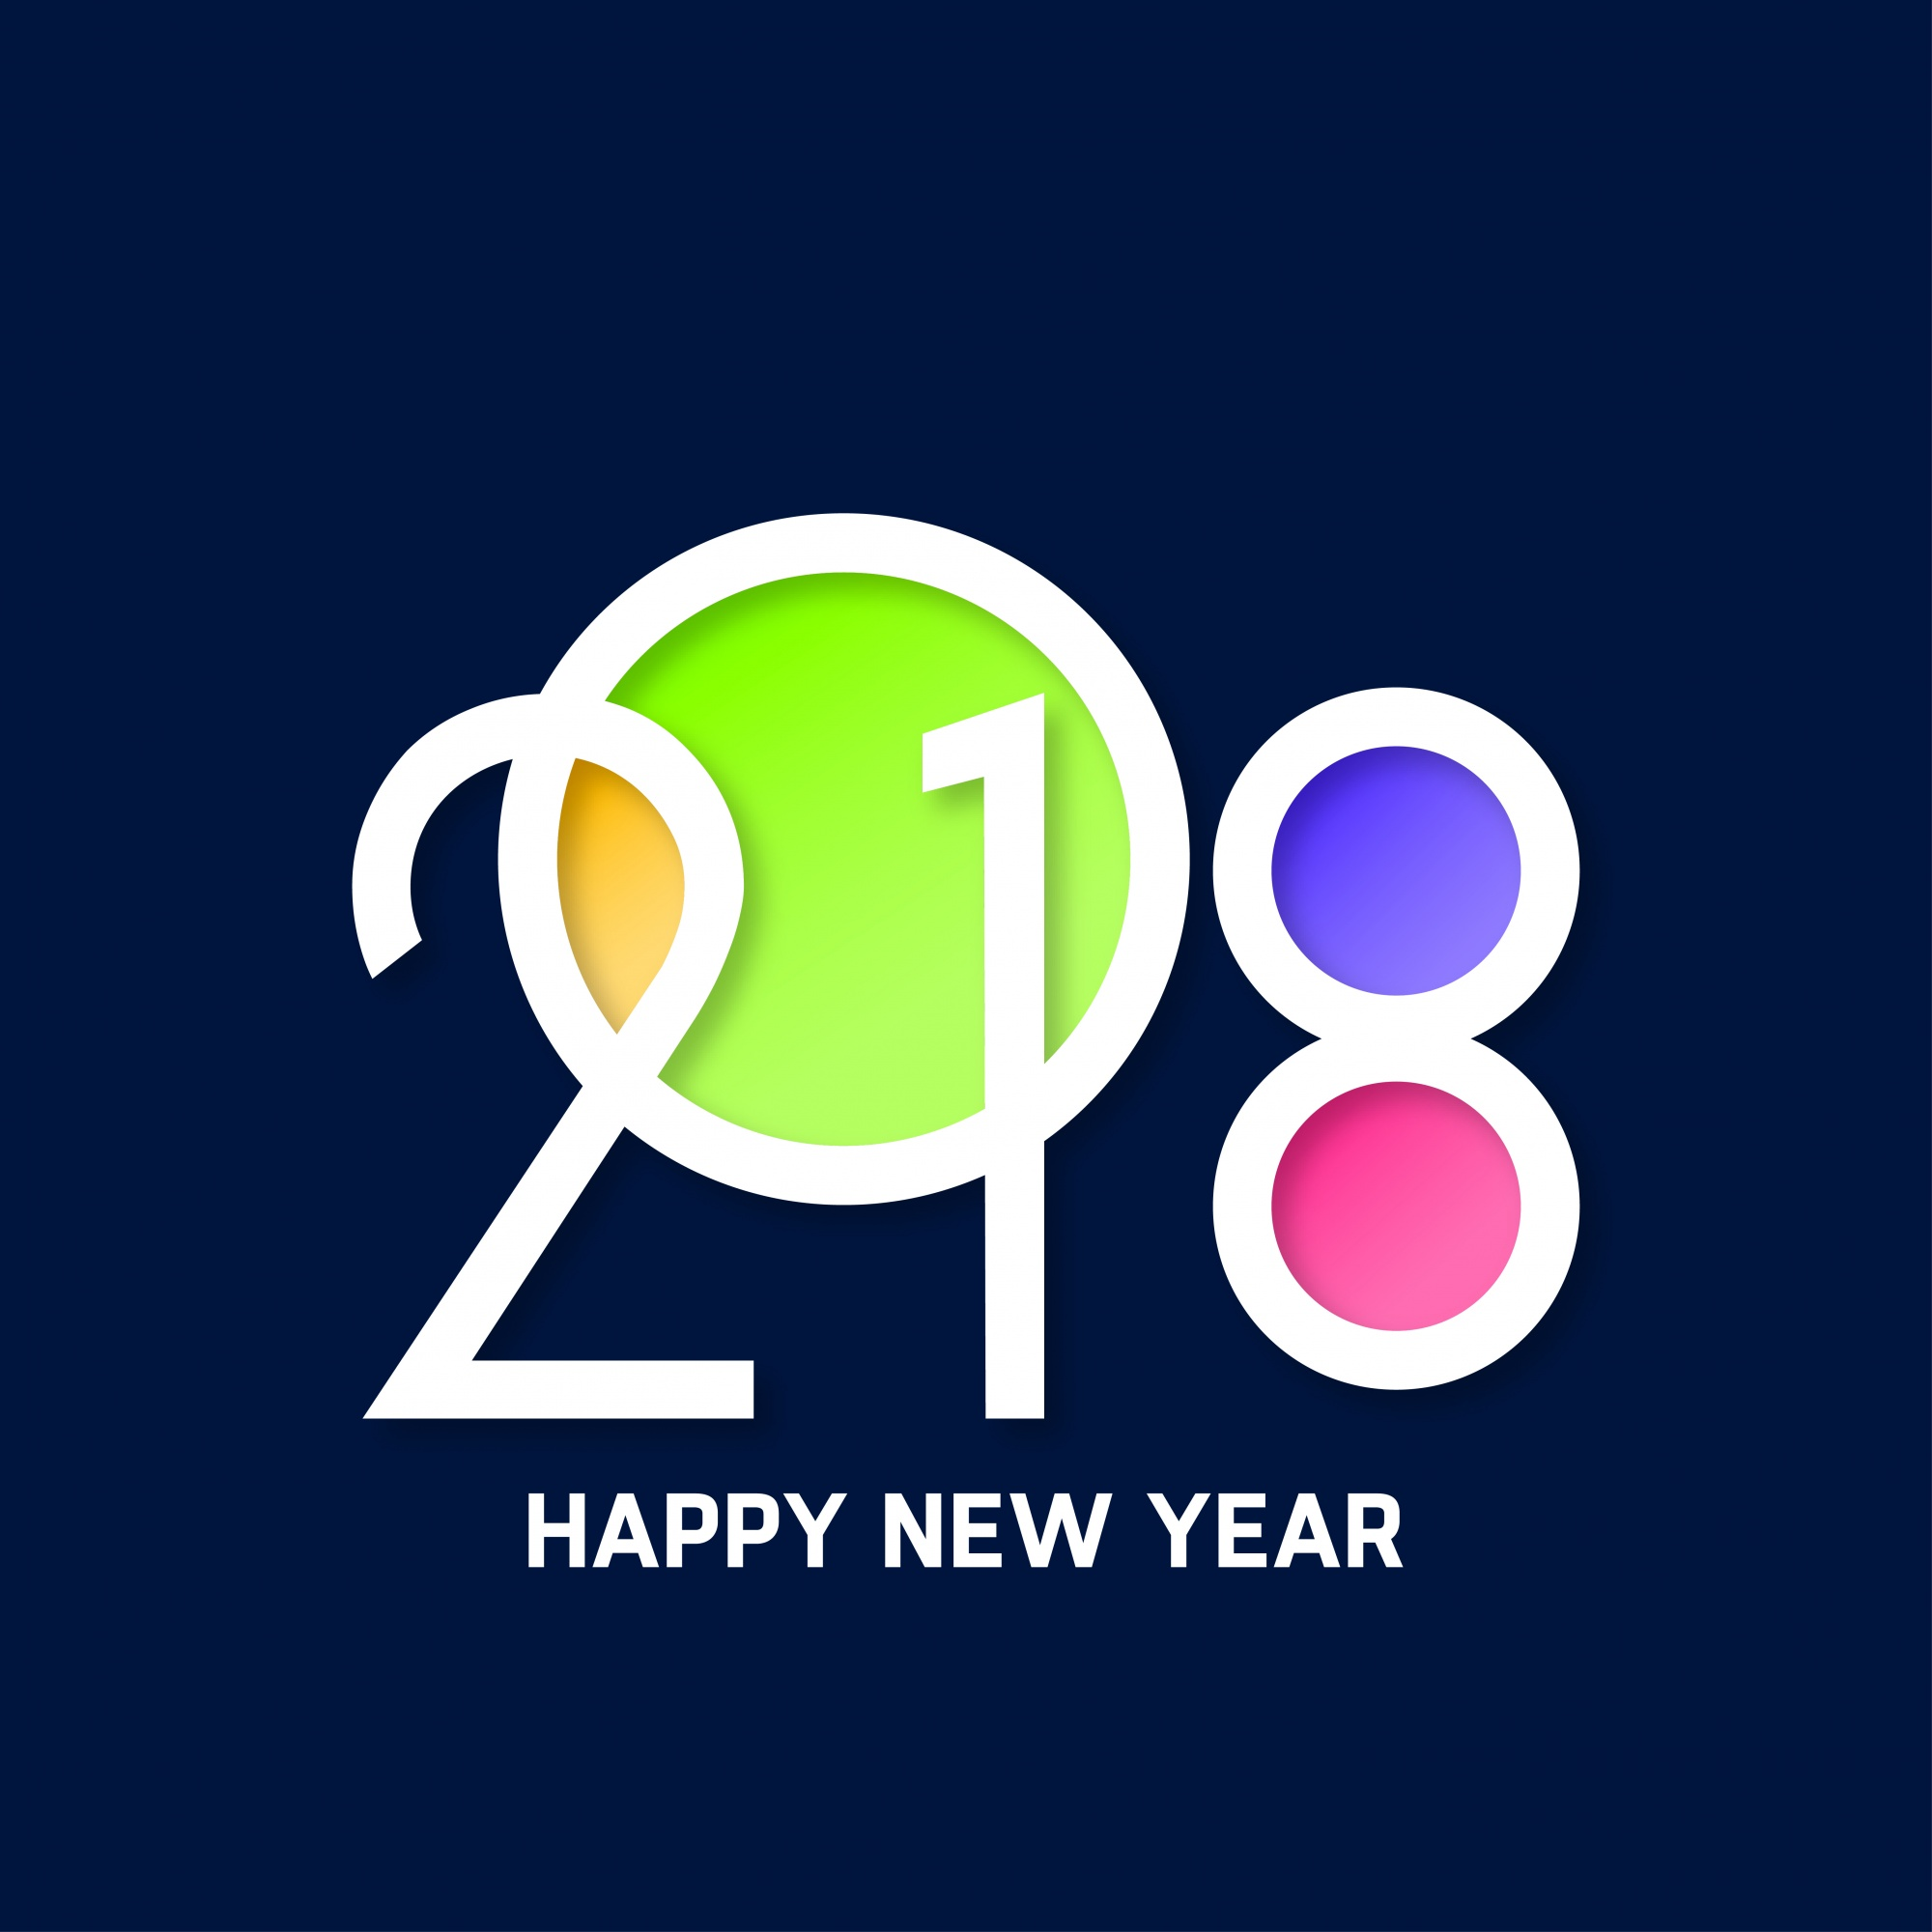 Colorful happy new year 2018 text design